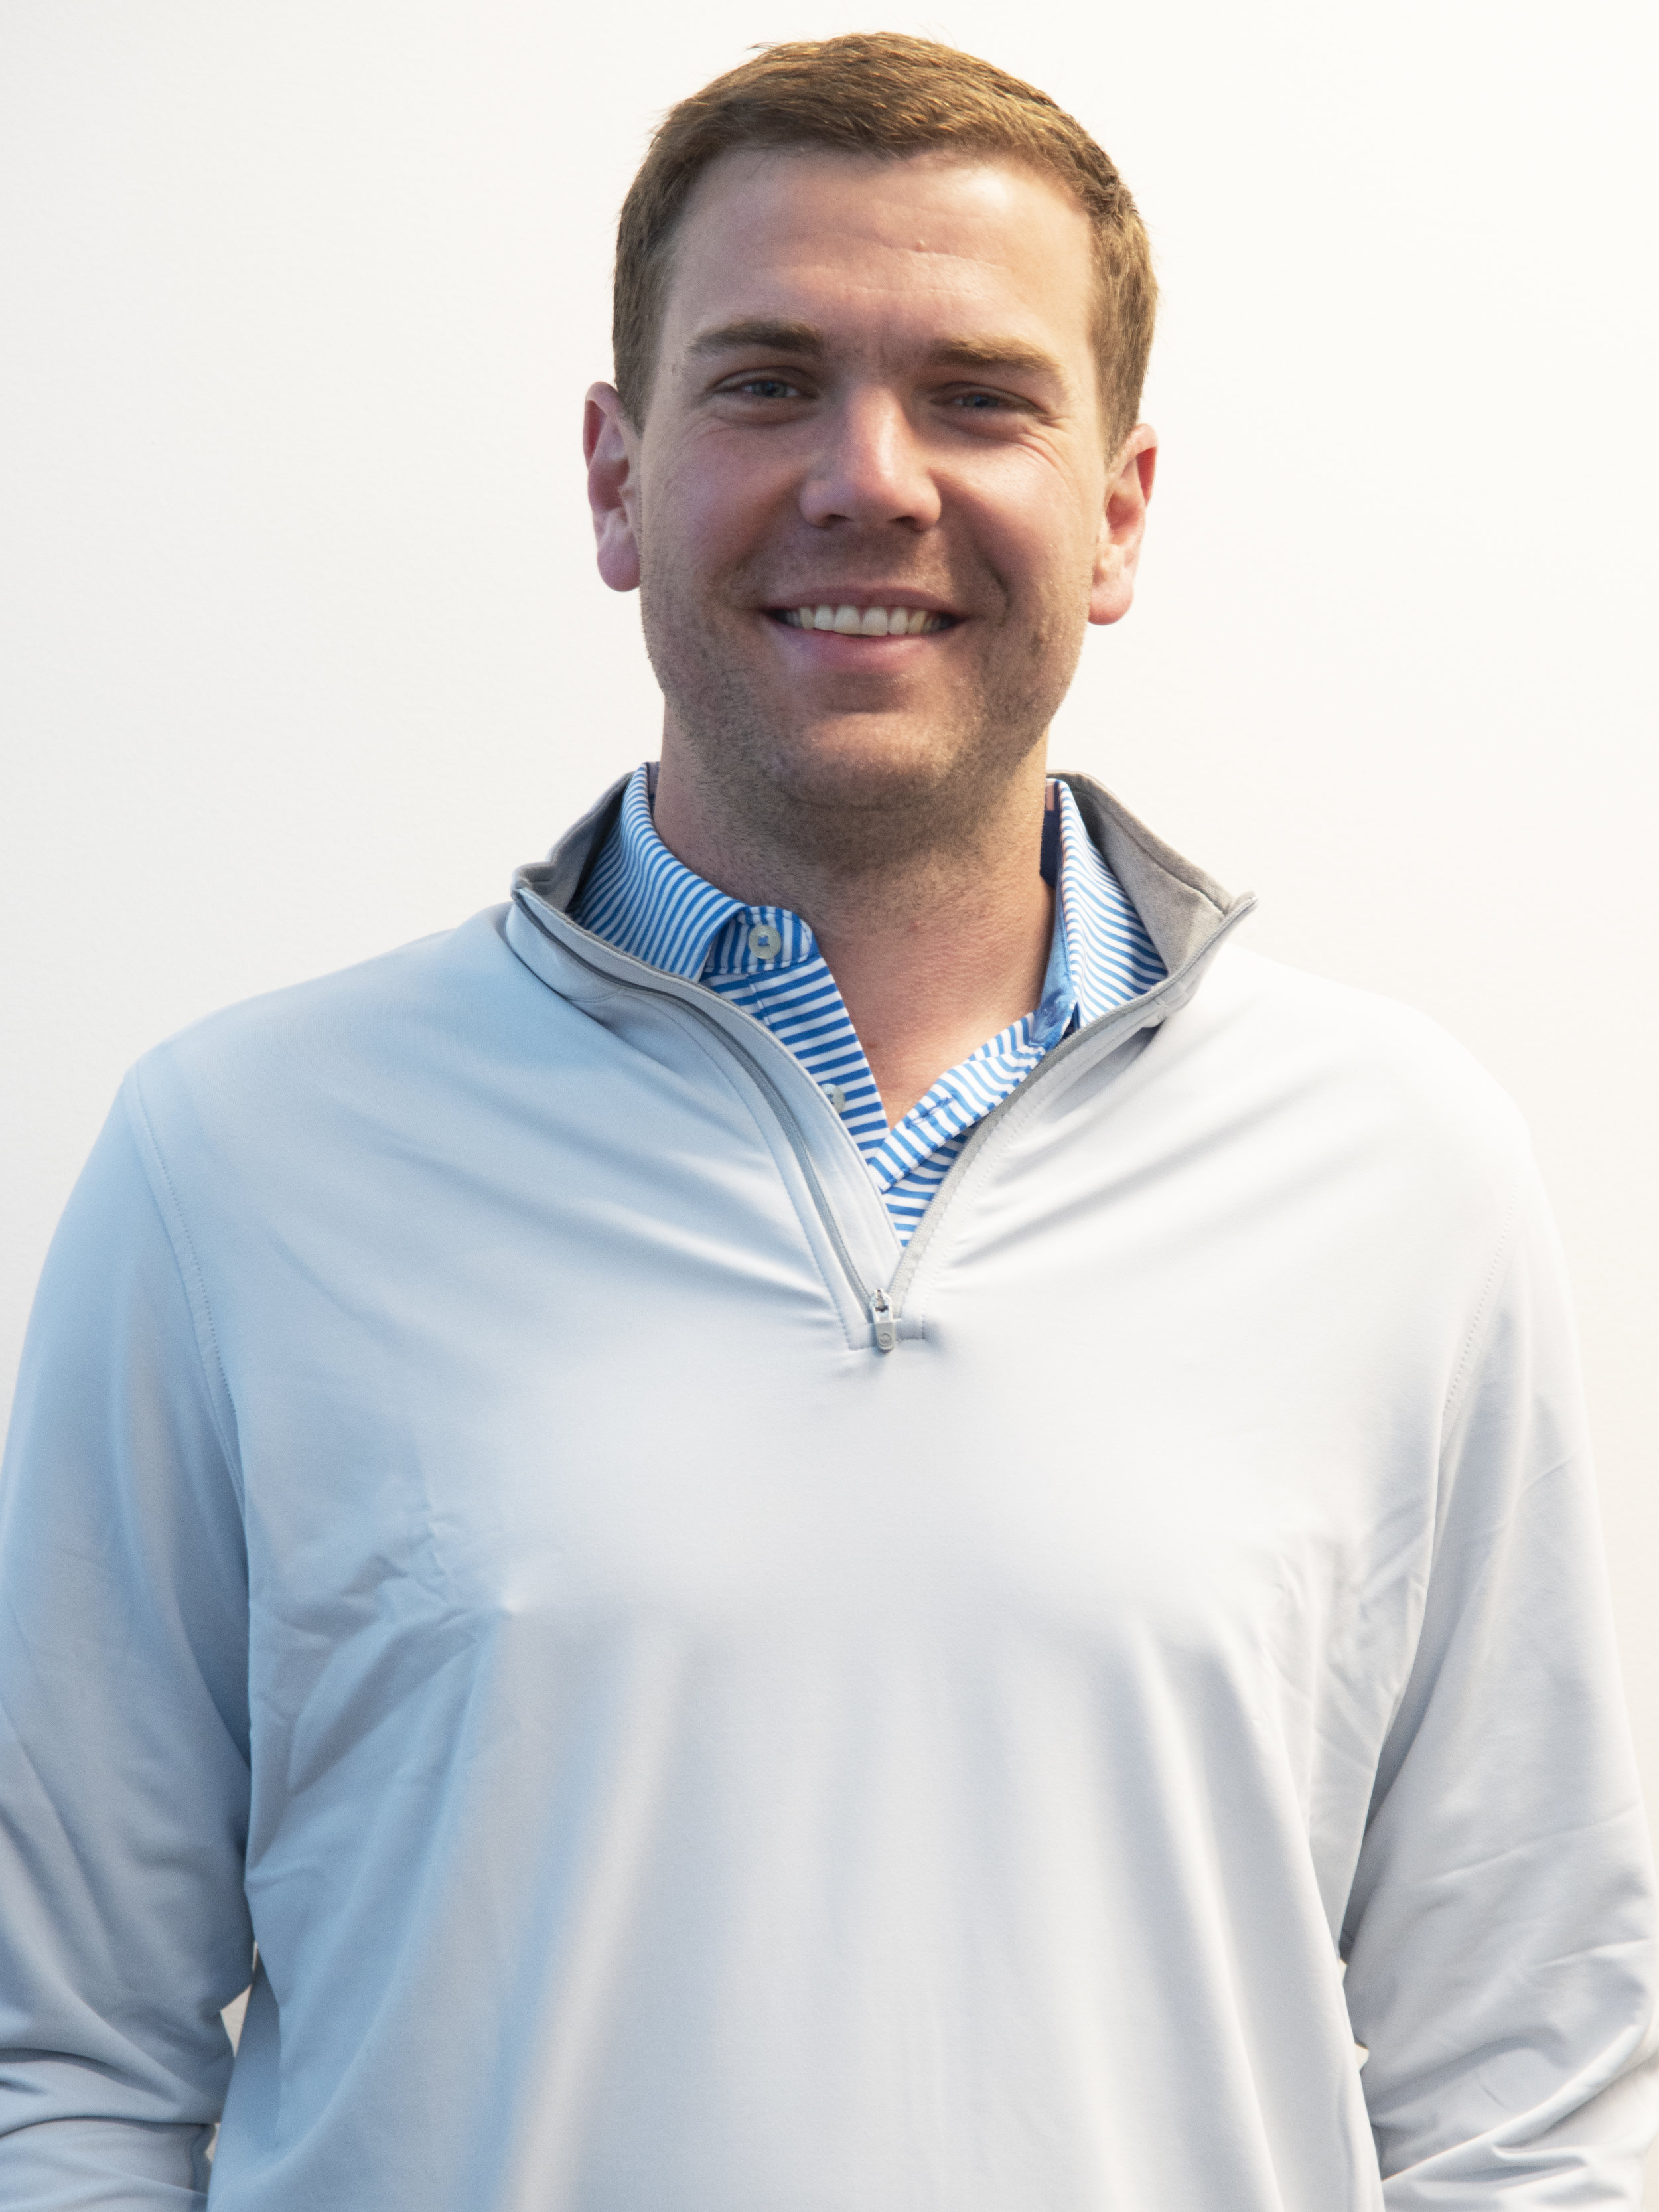 Chris Abbott  joined the CGC Ventures team in 2018. Previously, Chris led Craig-Hallum Capital Group's investment banking group efforts focused on sustainability, agriculture and agtech. Prior to Craig-Hallum, Chris worked at Piper Jaffray & Co. and AWJ Capital Partners, focused broadly on technology, sustainability, healthcare and consumer companies. He also currently serves on the Boards of CGCV companies. Chris loves to compete in triathlons, basketball and tennis. He is an avid supporter of Inner City Tennis and charity: water.